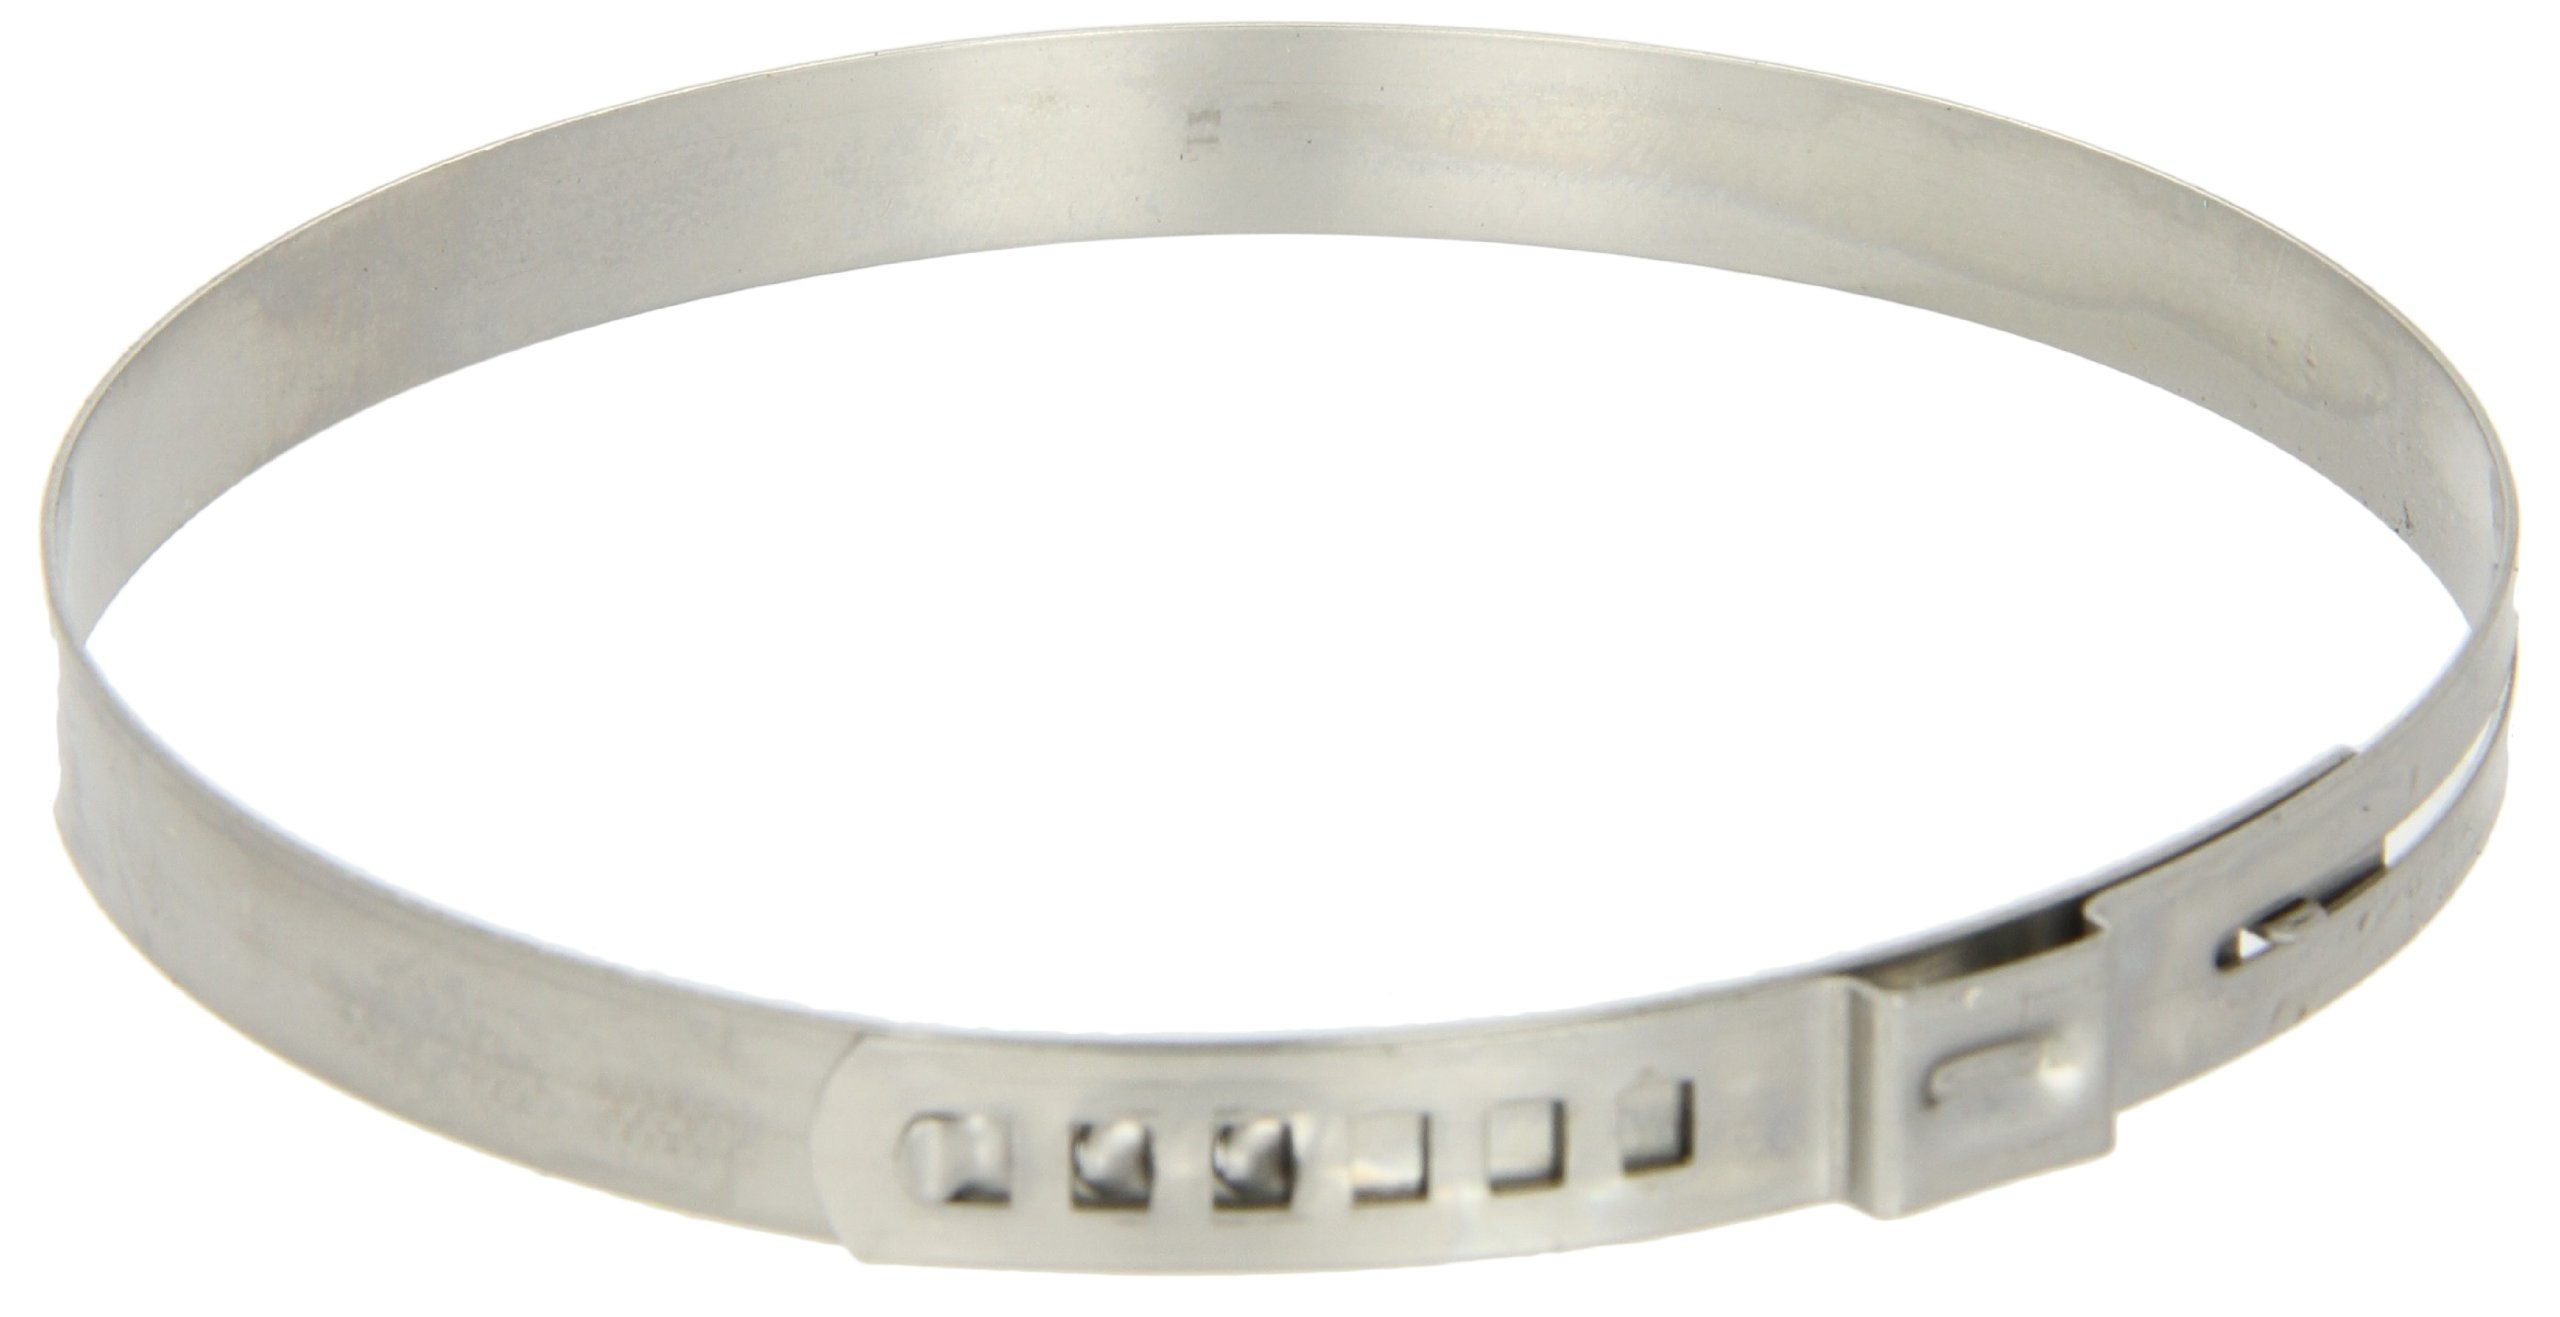 Oetiker 16300040 Stainless Steel 304 Adjustable Hose Clamp, One Ear, Clamp ID Range 76 mm (Closed) - 84 mm (Open) (Pack of 100)